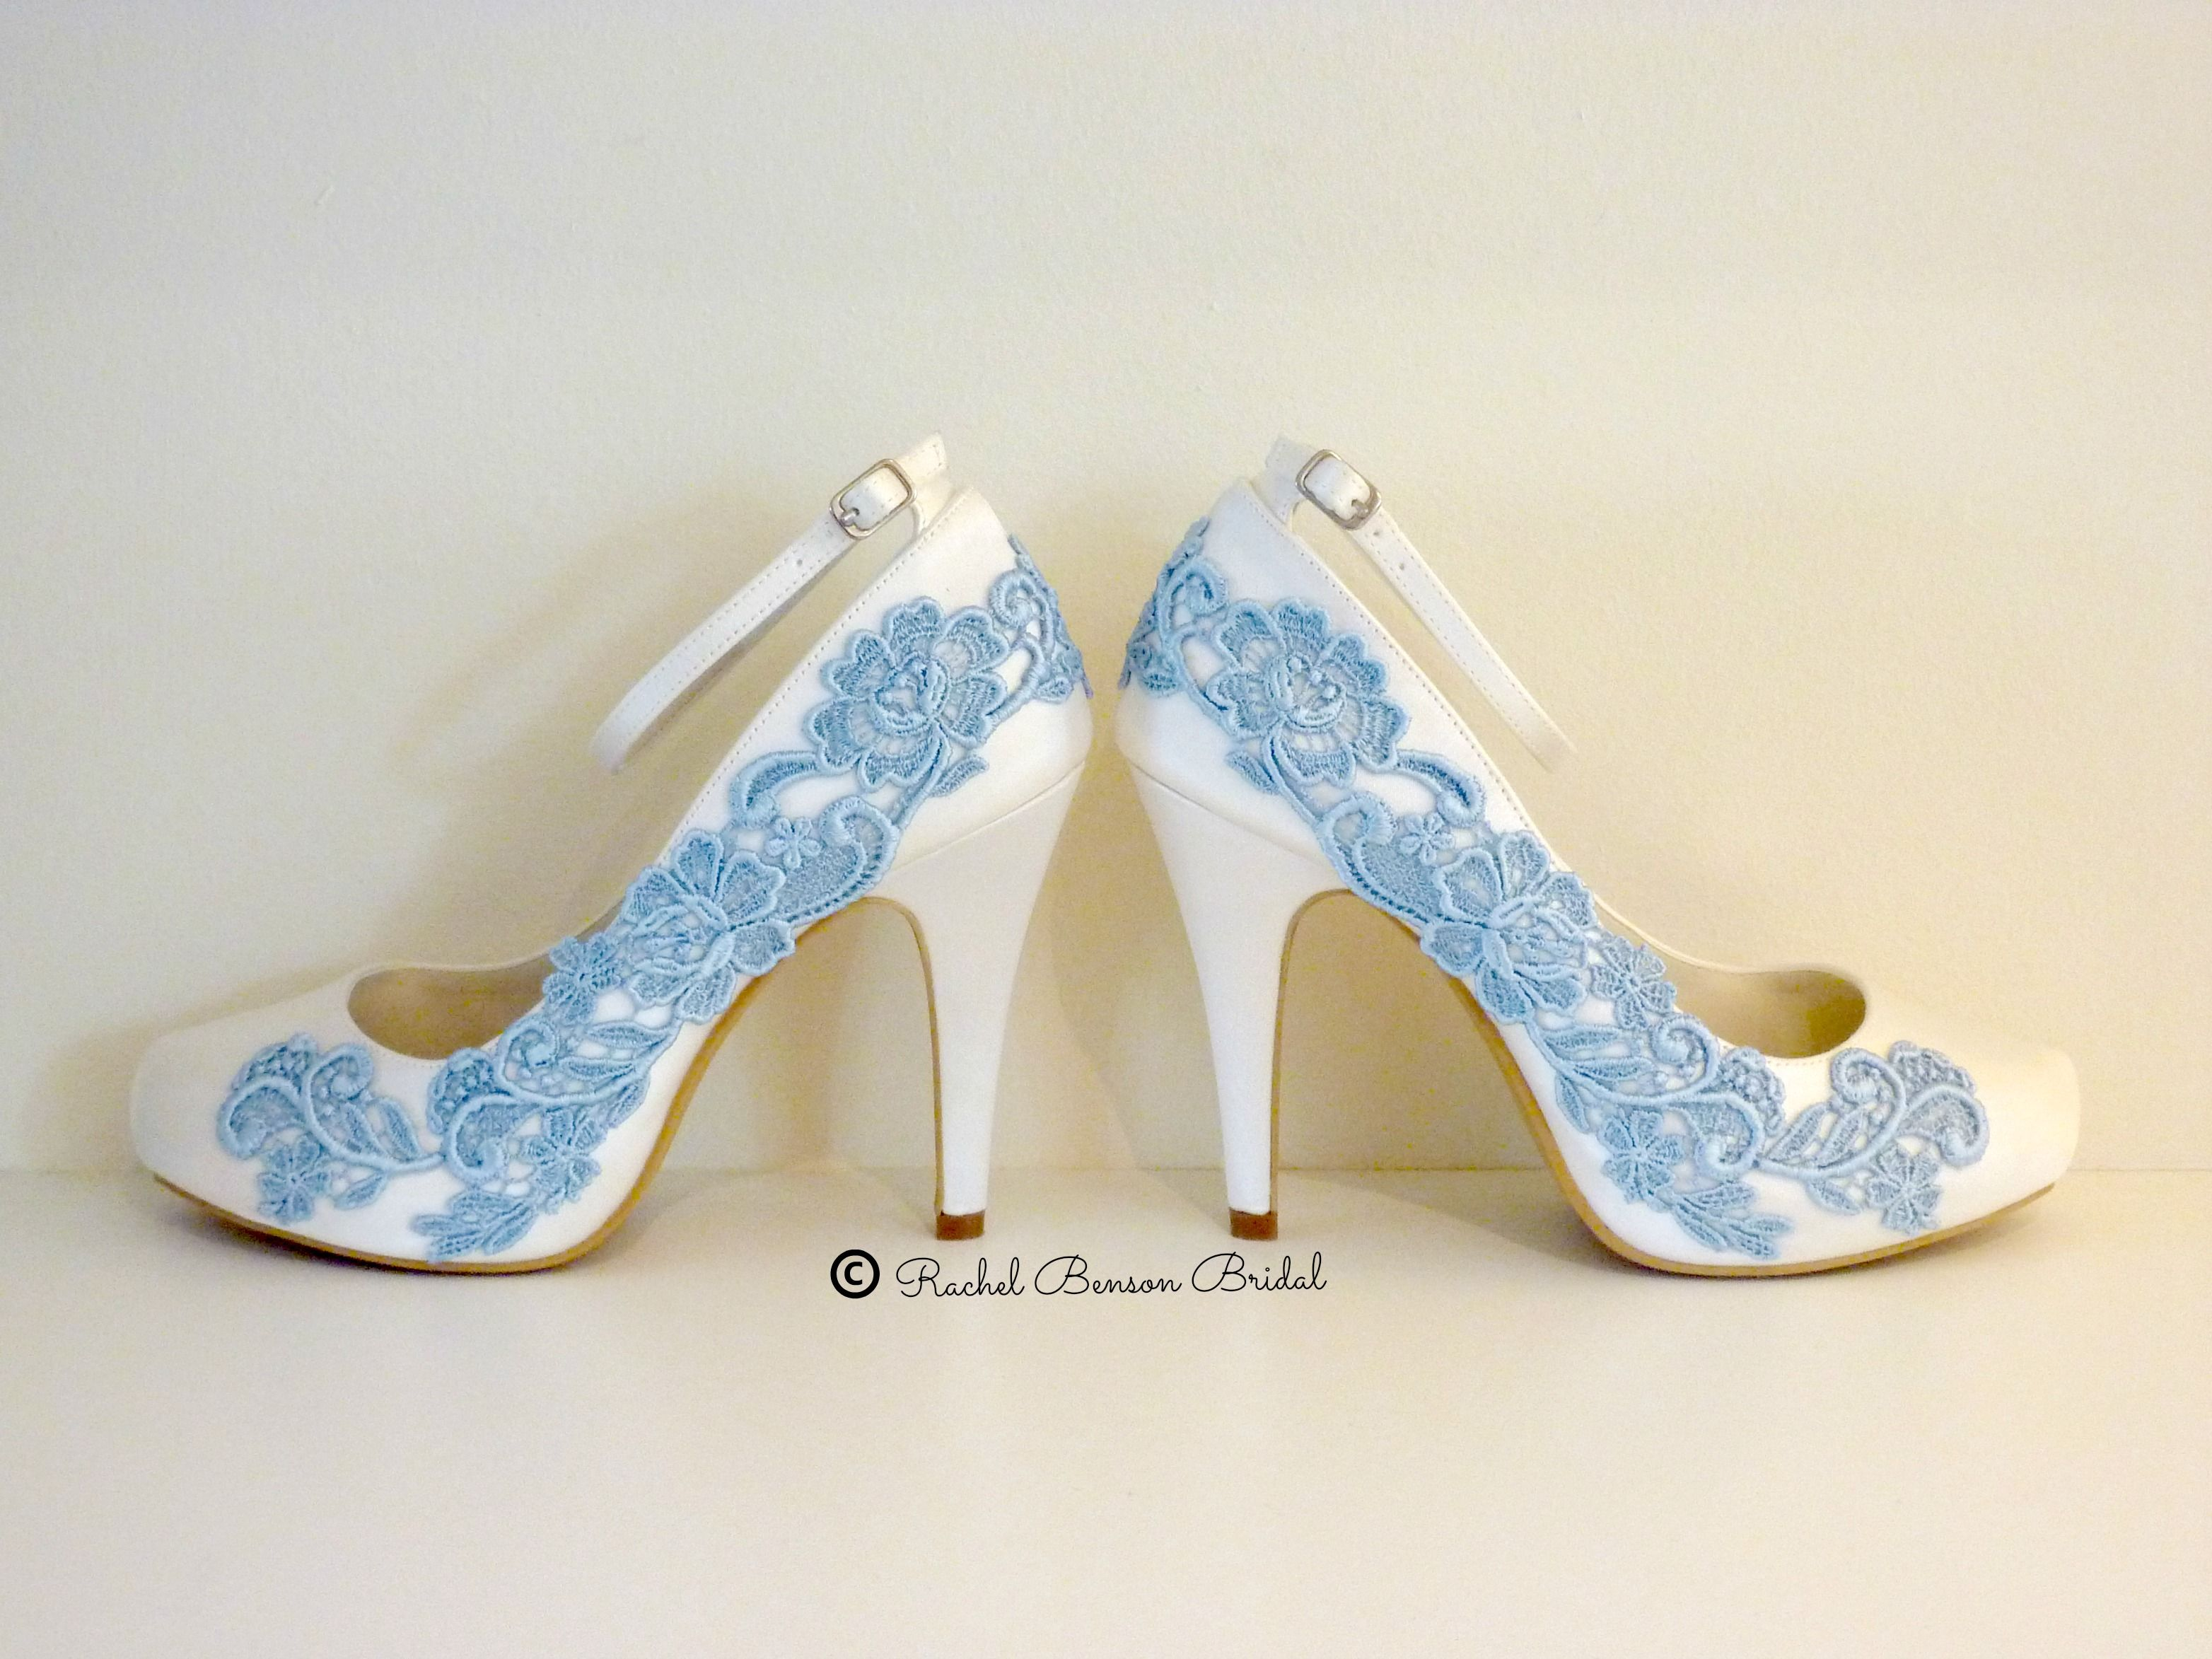 Hand customised bridal shoes crafts pinterest crafts